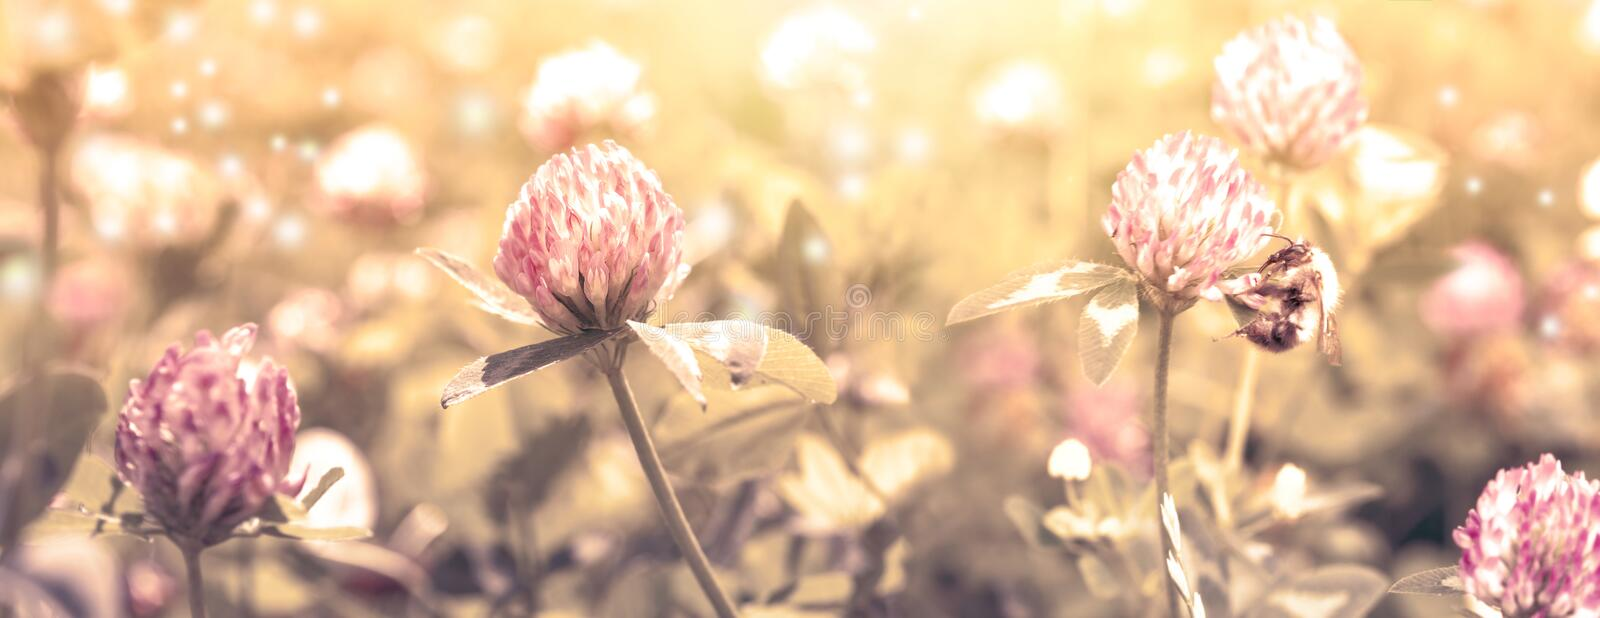 Beautiful spring wild meadow clover flowers, pink and yellow colors in sun light with bee, macro. Soft focus nature background. stock image